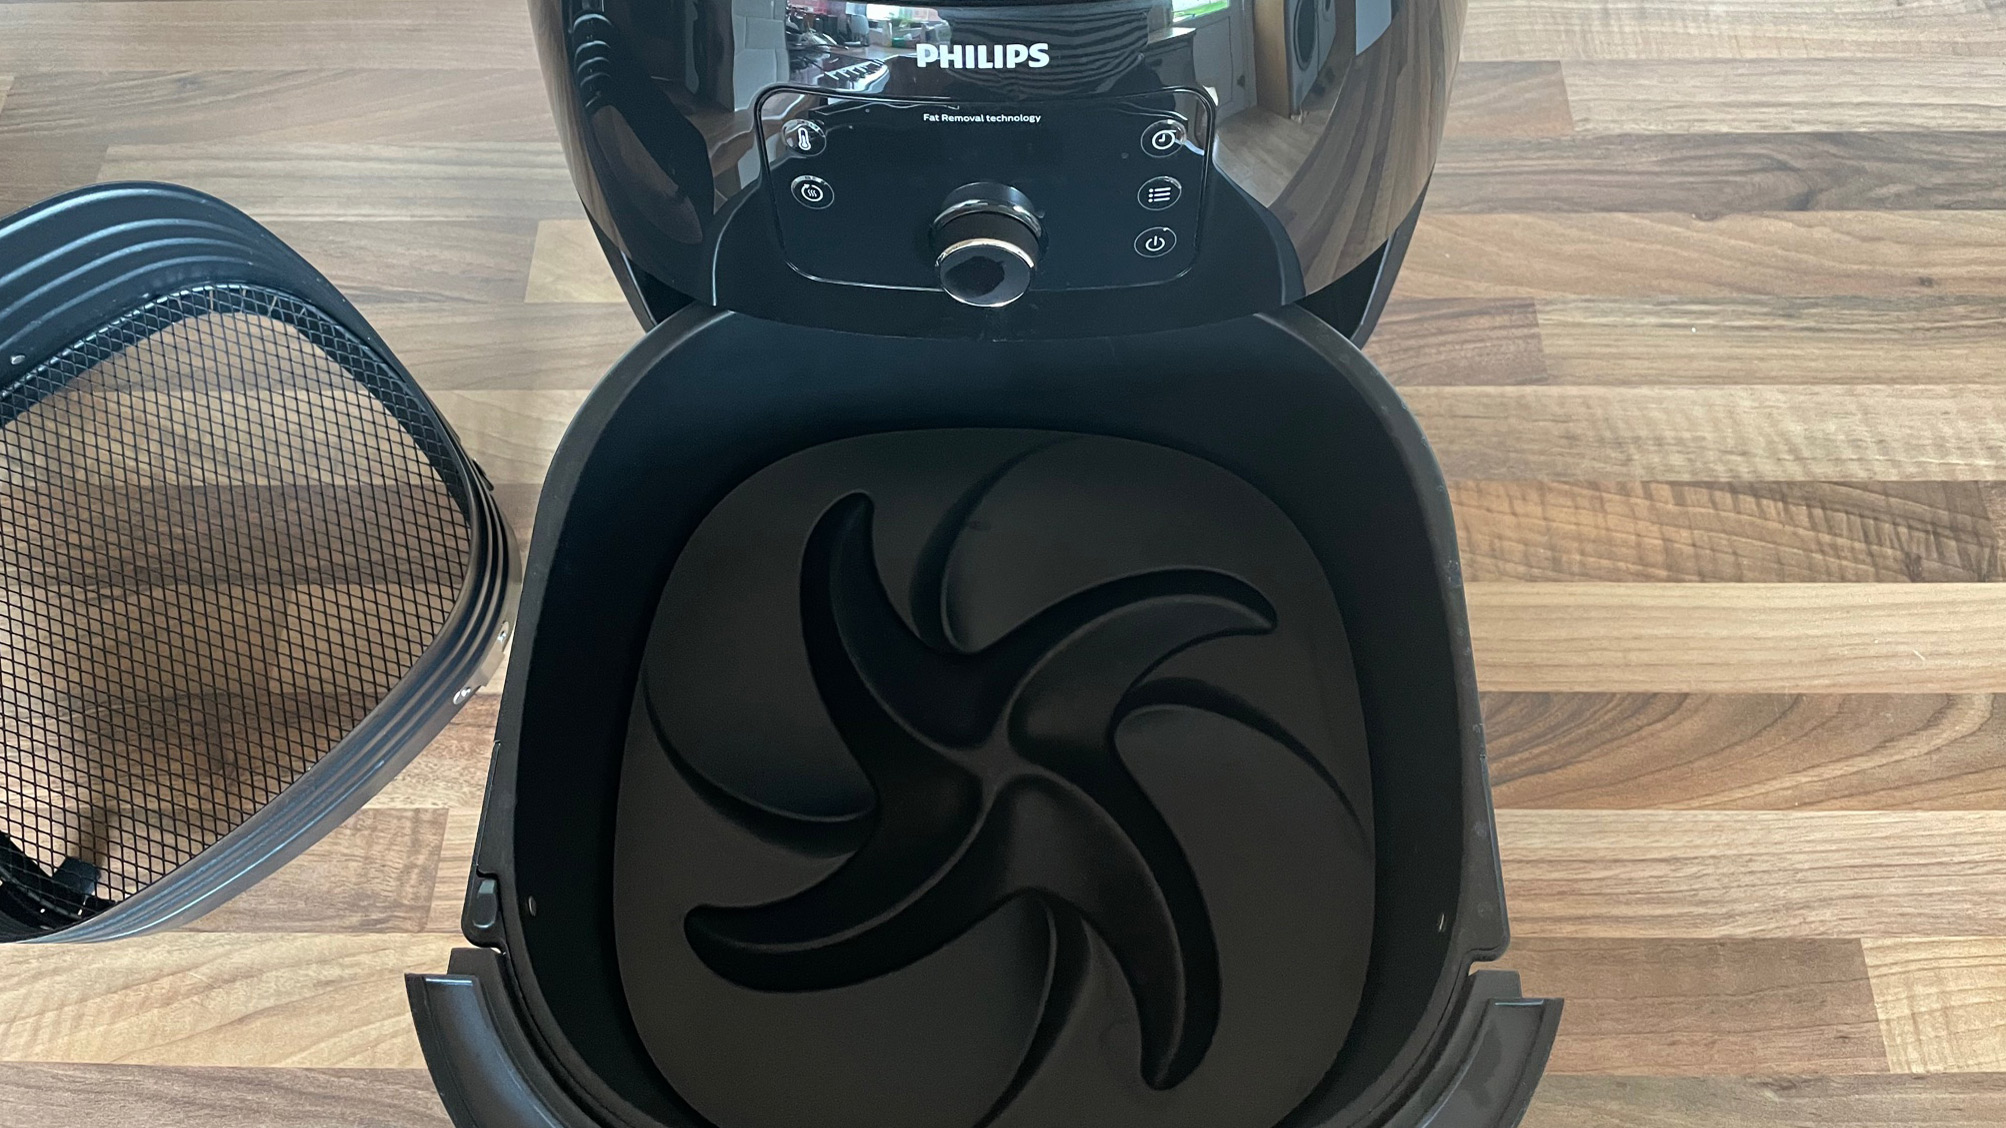 The fat trapper of the Philips Airfryer XXL HD9650/99 air fryer